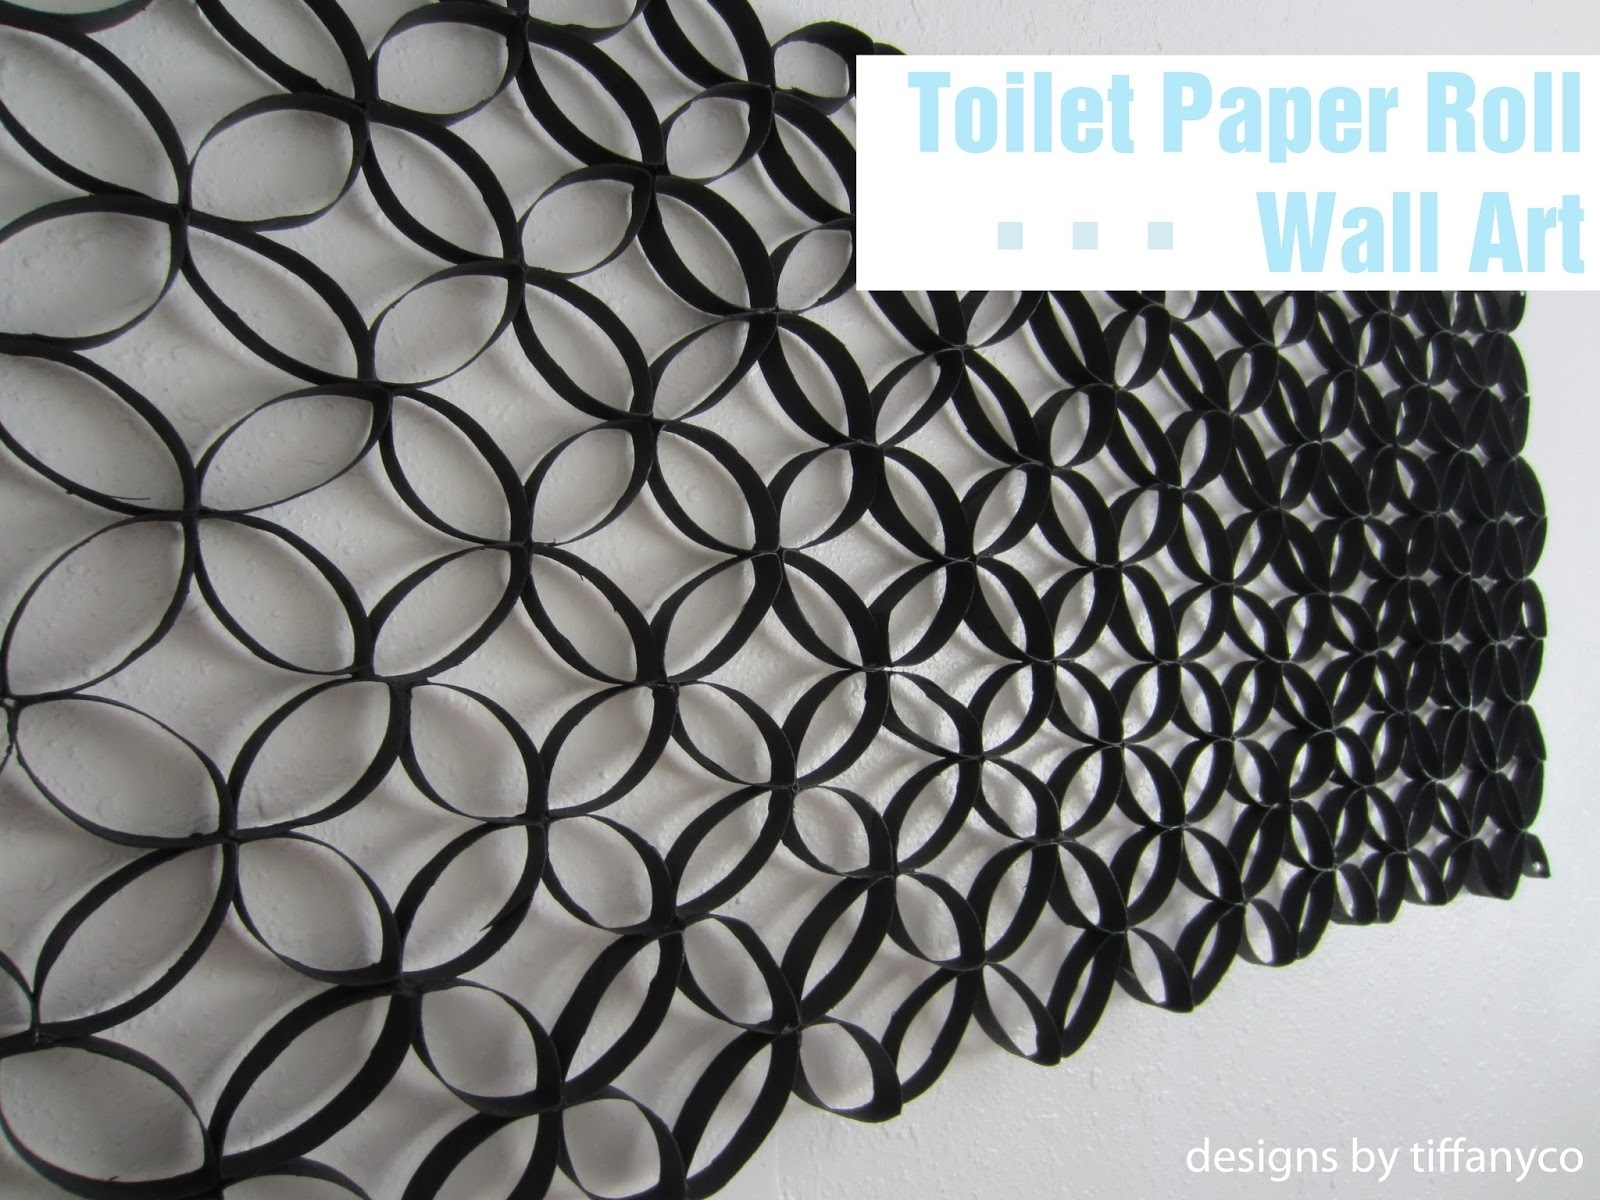 Toilet Paper Roll Wall Art - Designstiffanyco for Toilet Paper Roll Wall Art (Image 14 of 20)